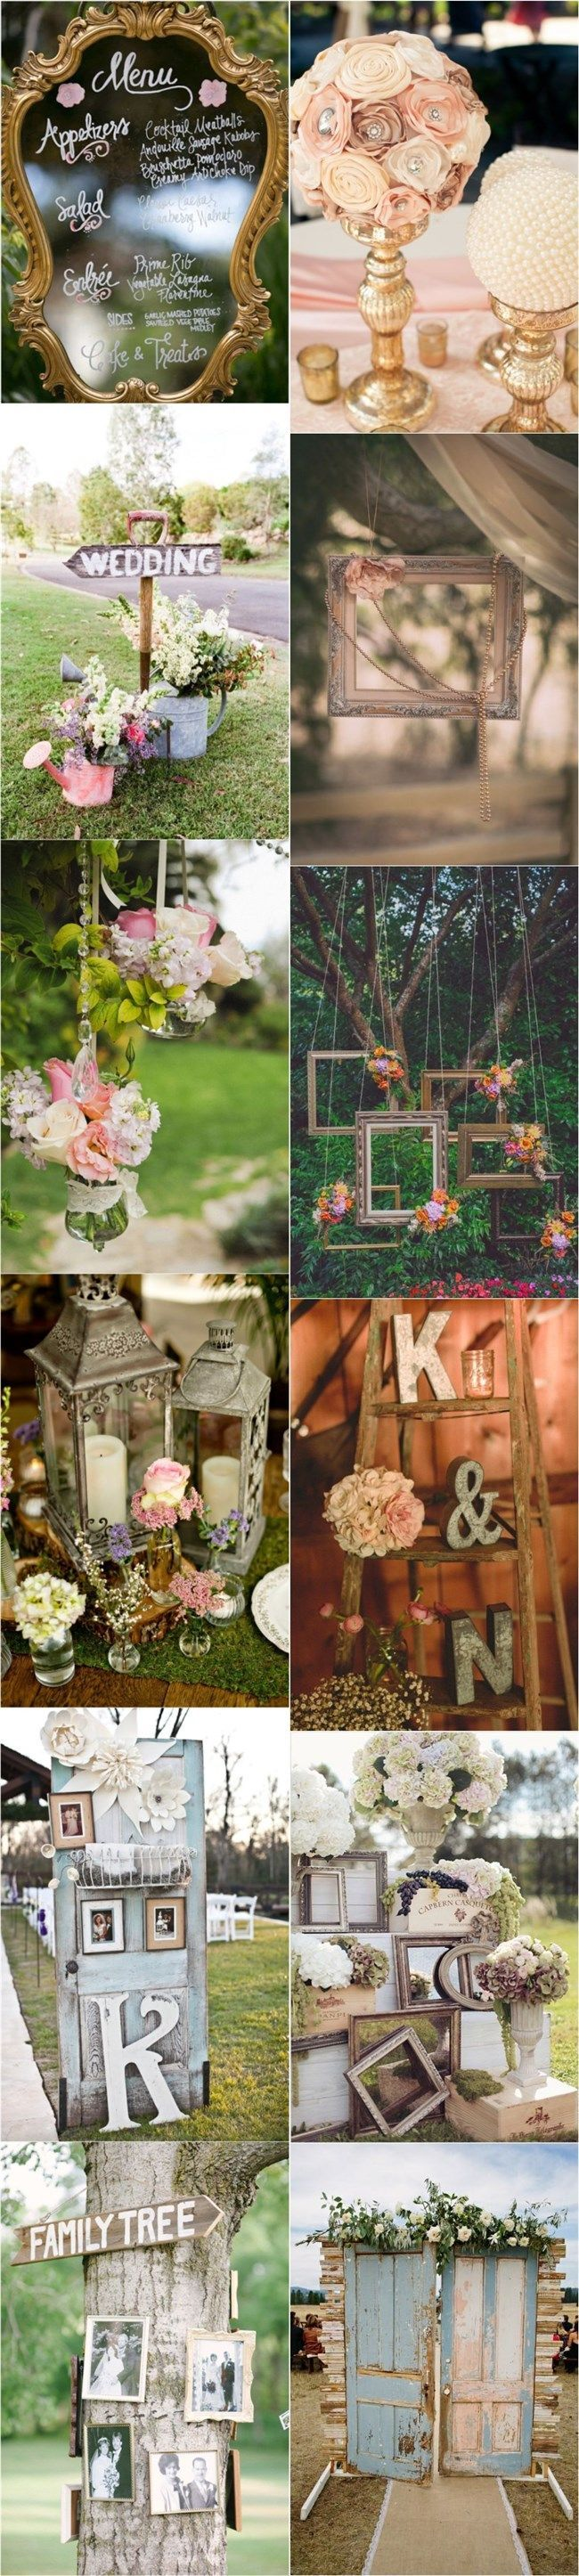 rustic and vintage wedding decorations